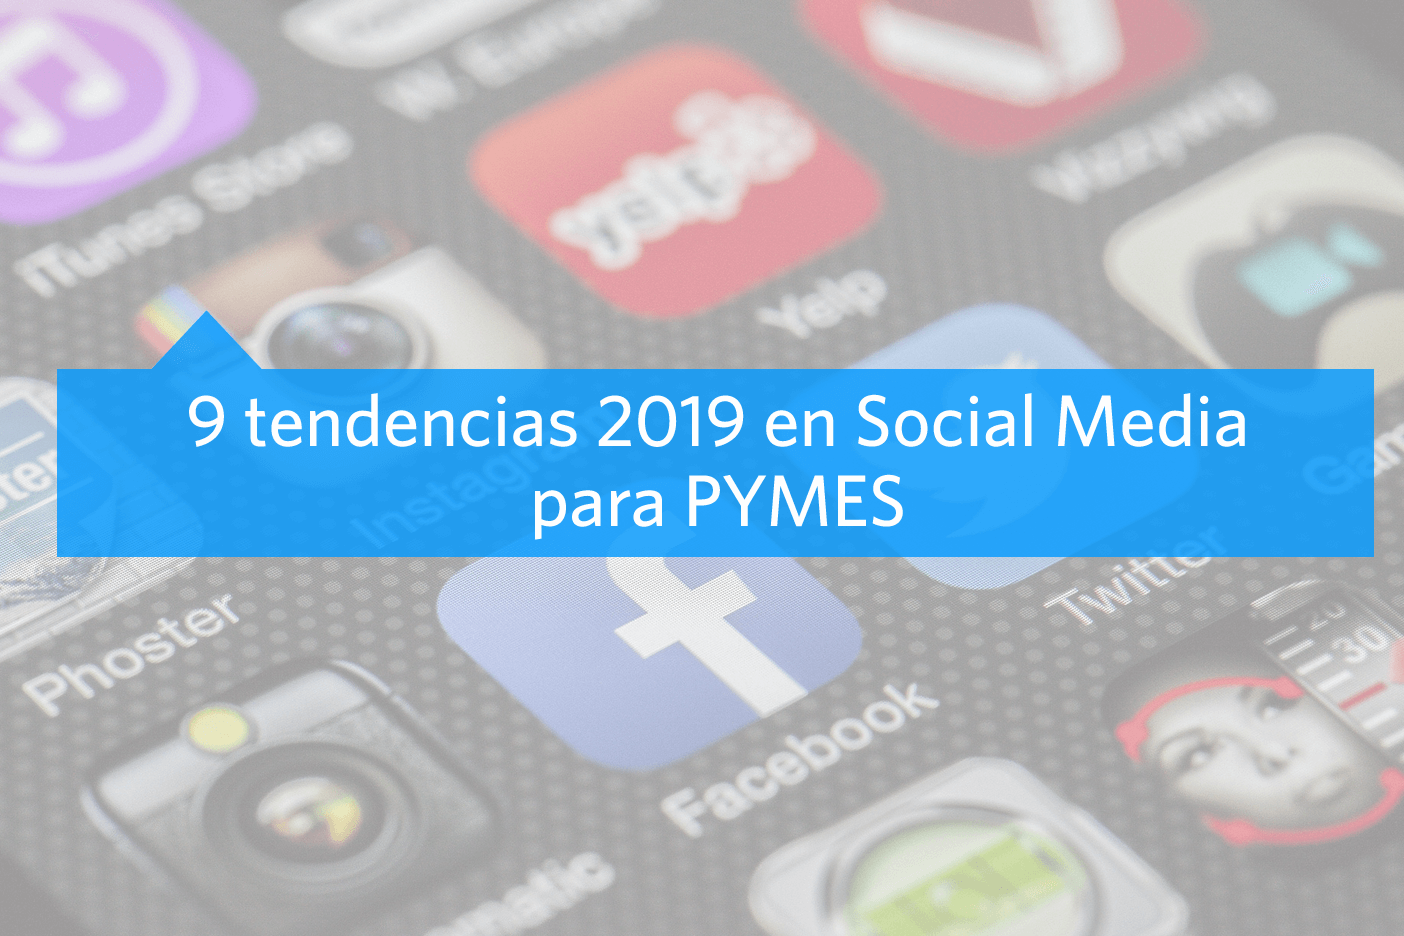 Tendencias 2019 en Social Media